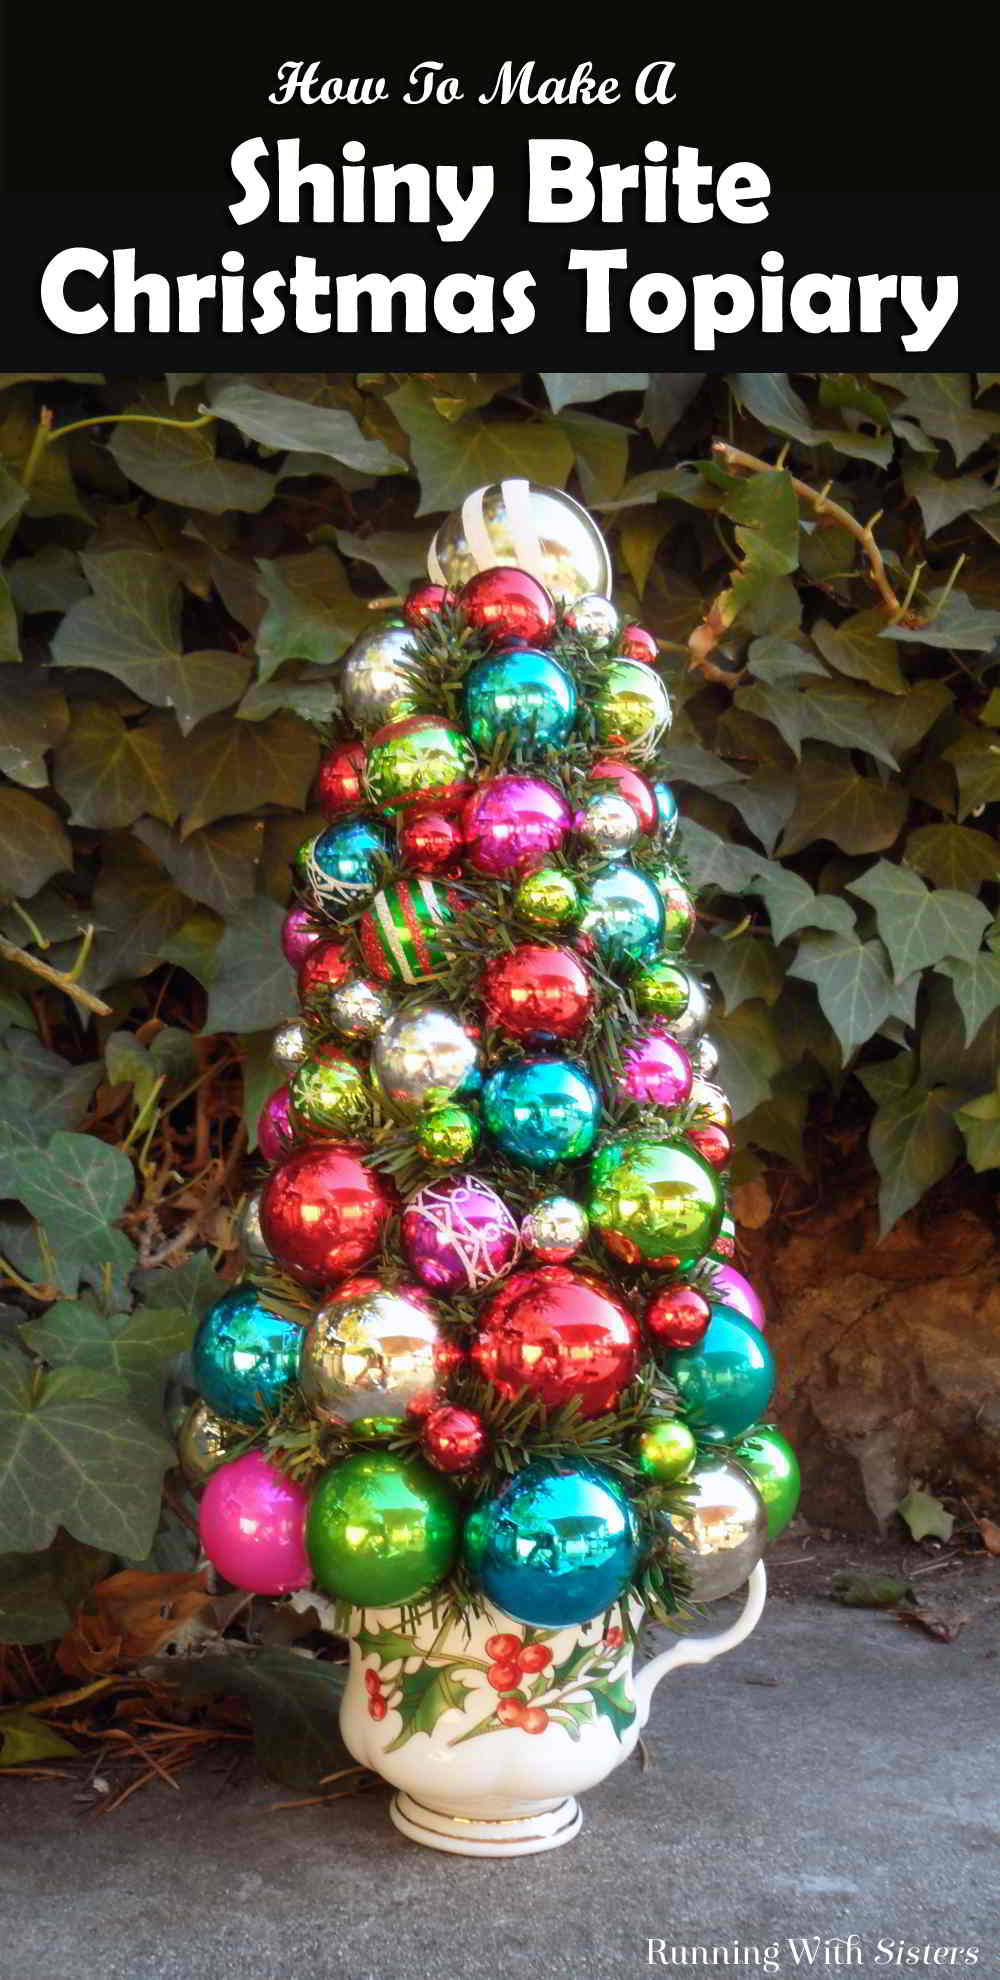 Make Shiny Brite Christmas Topiary using Christmas ornaments! This easy Christmas craft will be a stunner to decorate with for years to come!